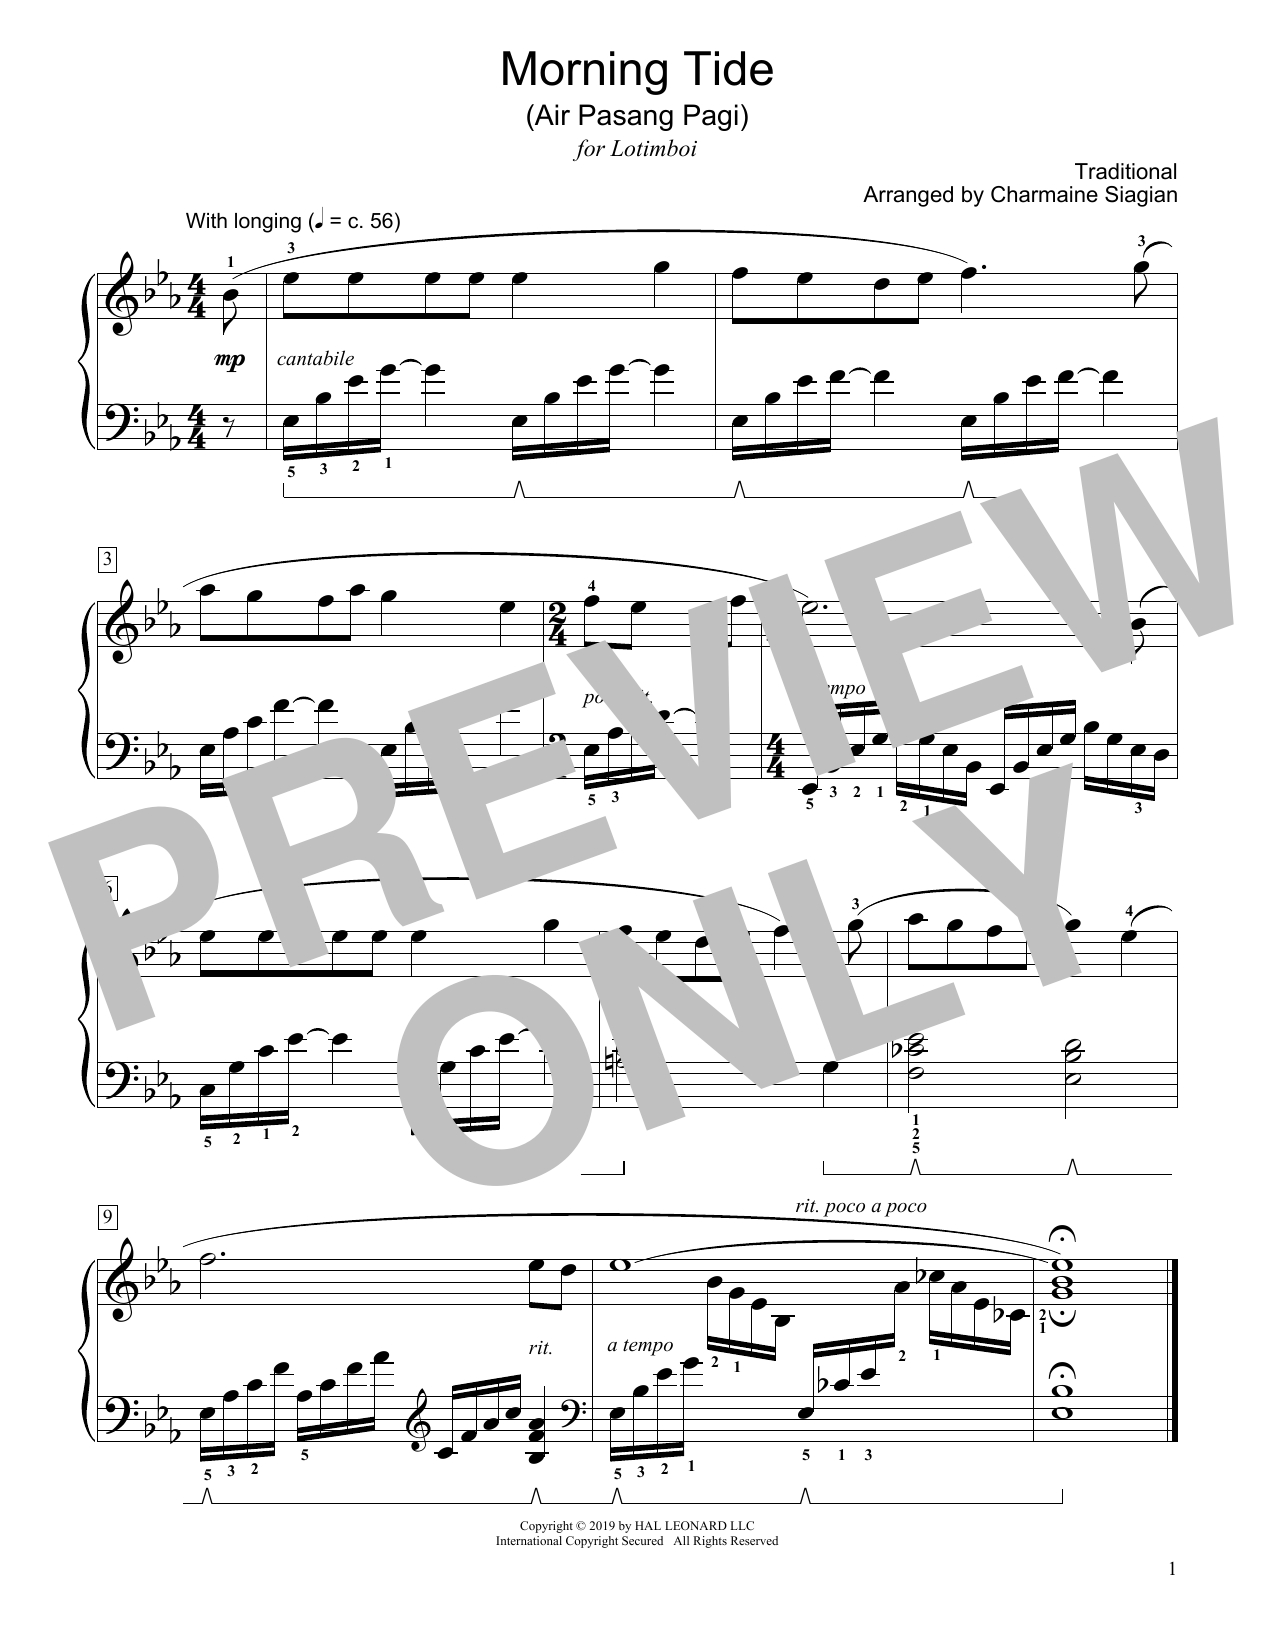 Traditional Morning Tide (Air Pasang Pagi) (arr. Charmaine Siagian) sheet music notes and chords. Download Printable PDF.